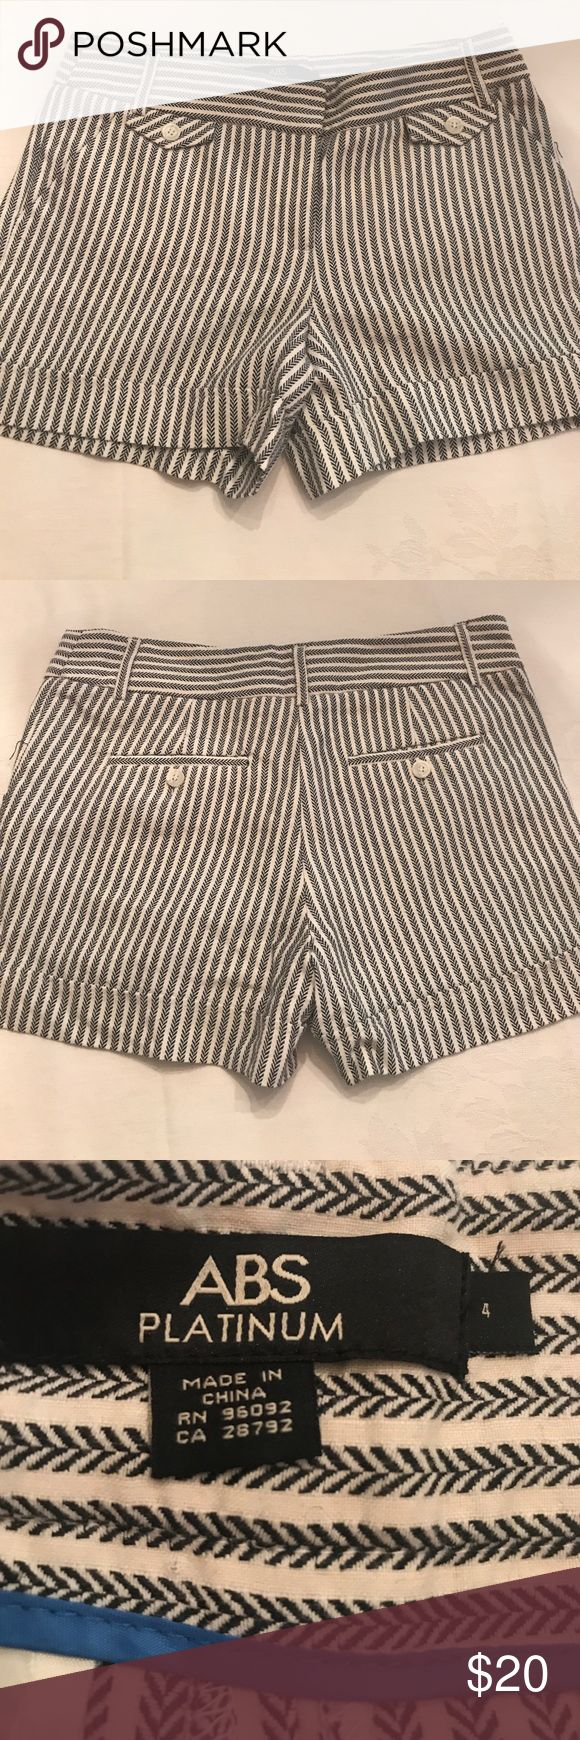 Women's Size 4 black and white short These are a women's size 4. They are black and white. They are gently worn with no stains or holes. Abs Platinum Shorts